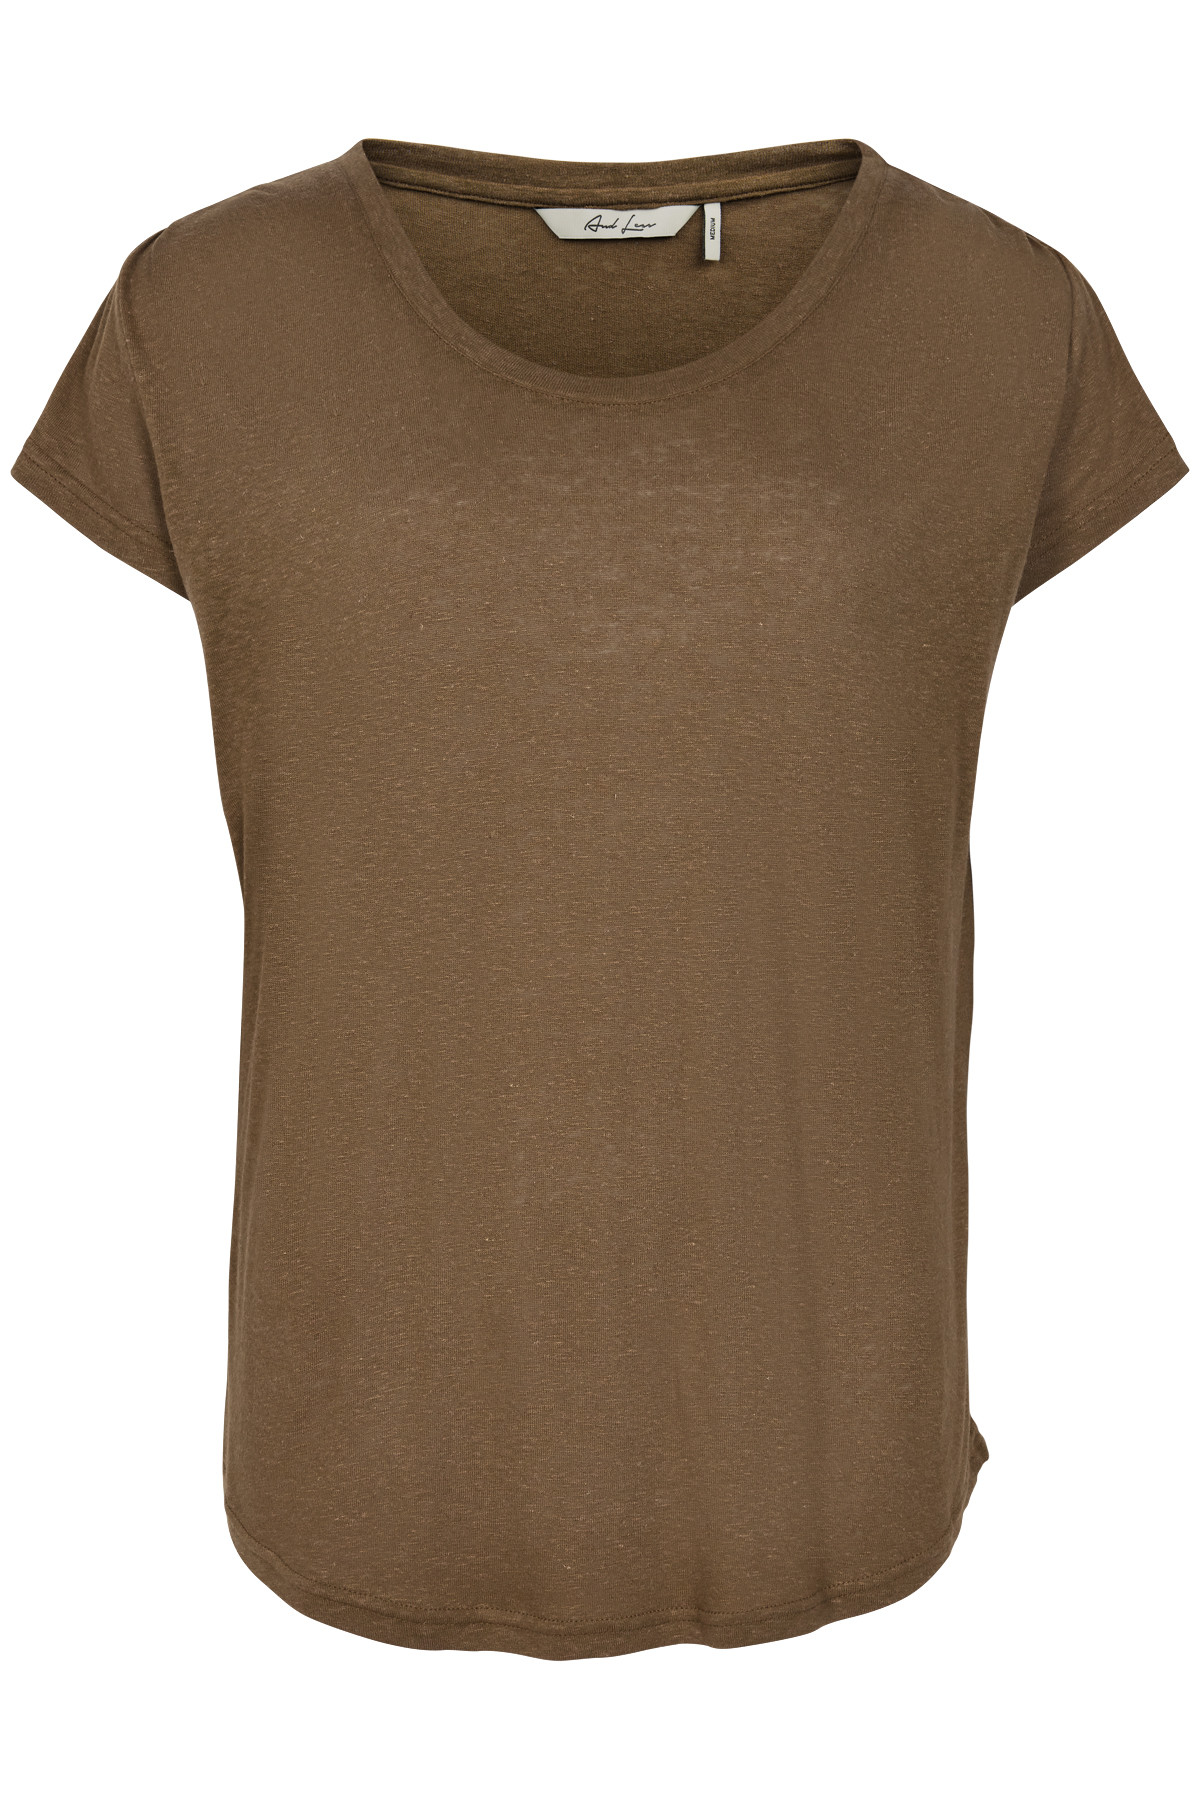 Image of   AND LESS NEW BORAGE BLUSE 5419303 (Teak, XL)